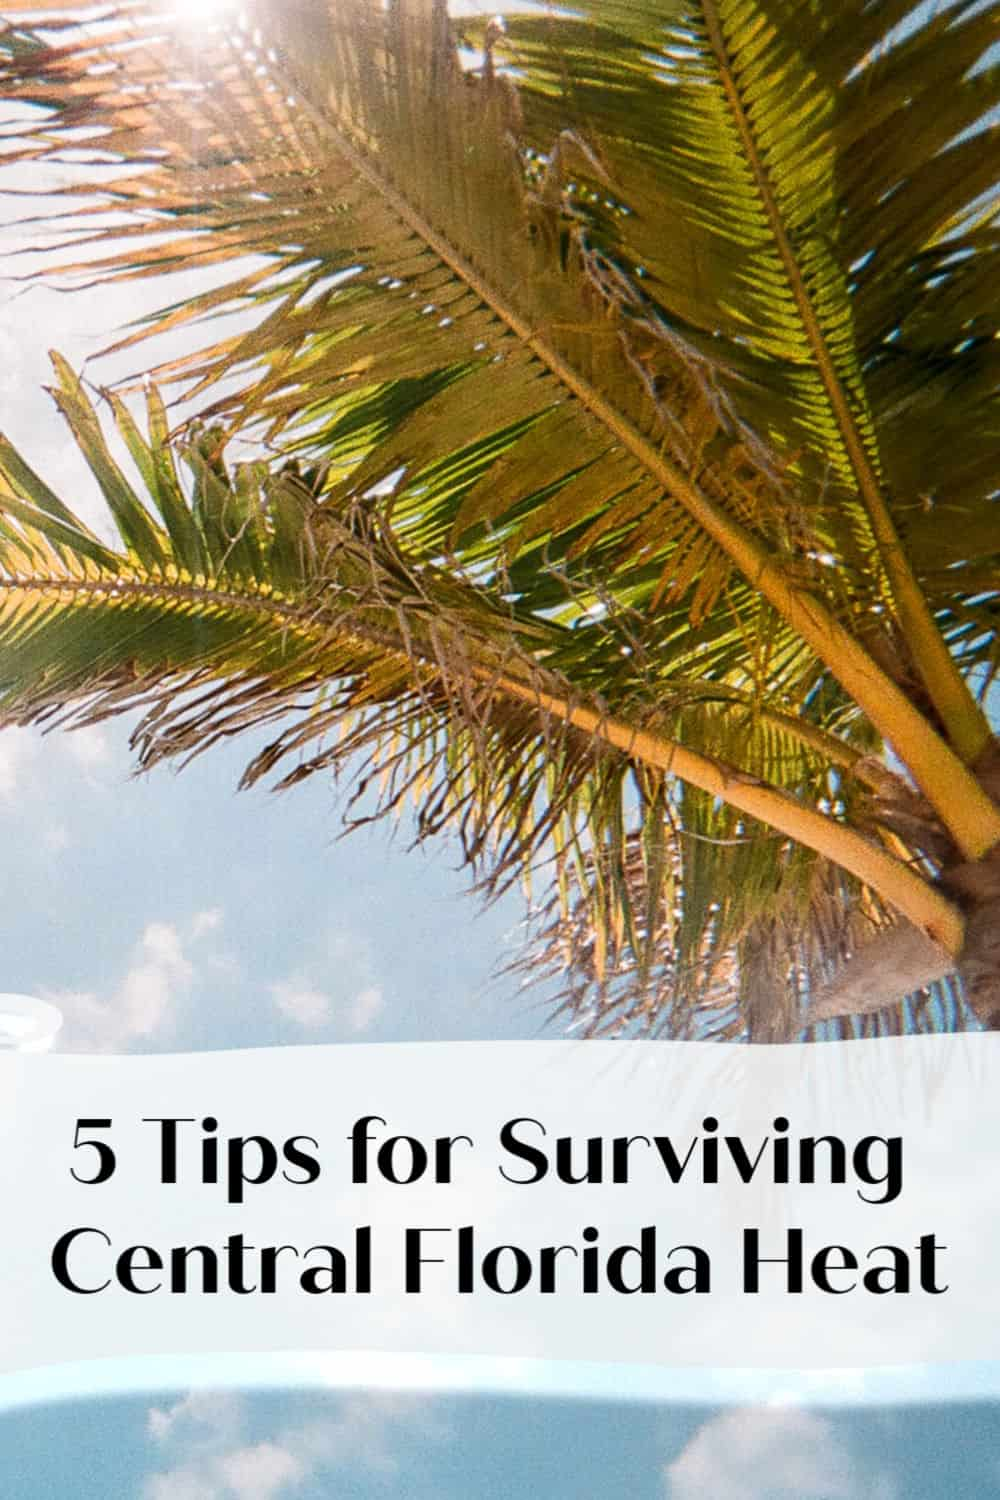 5 Tips for Surviving the Central Florida heat on your vacation. #Florida #Travel